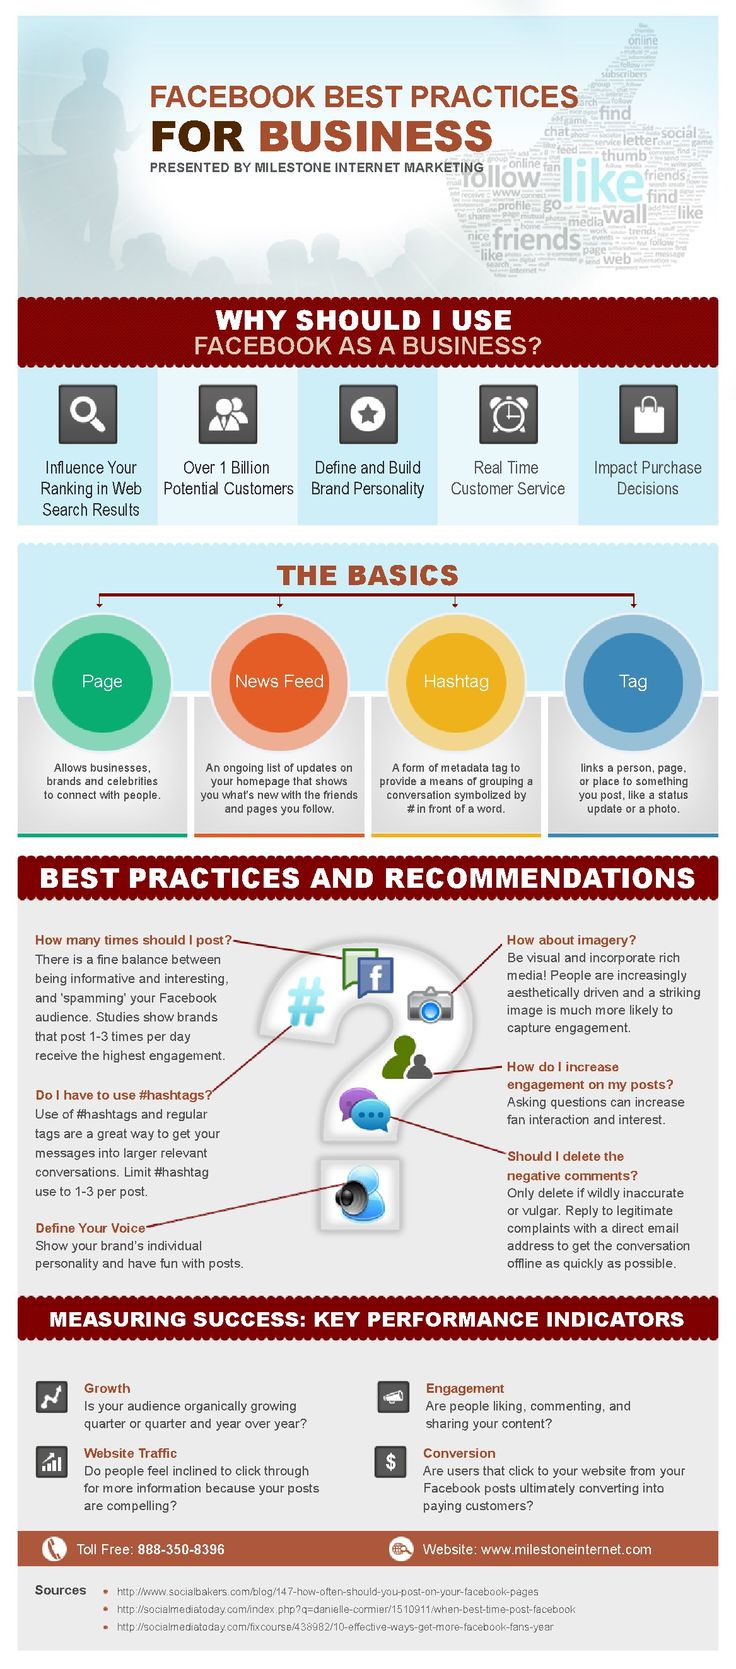 Have some new members on your social marketing team or just looking for a refresher on Facebook? Check out our infographic on best practices for business. http://blog.milestoneinternet.com/website-promotion/facebook-best-practices-for-business-infographic/